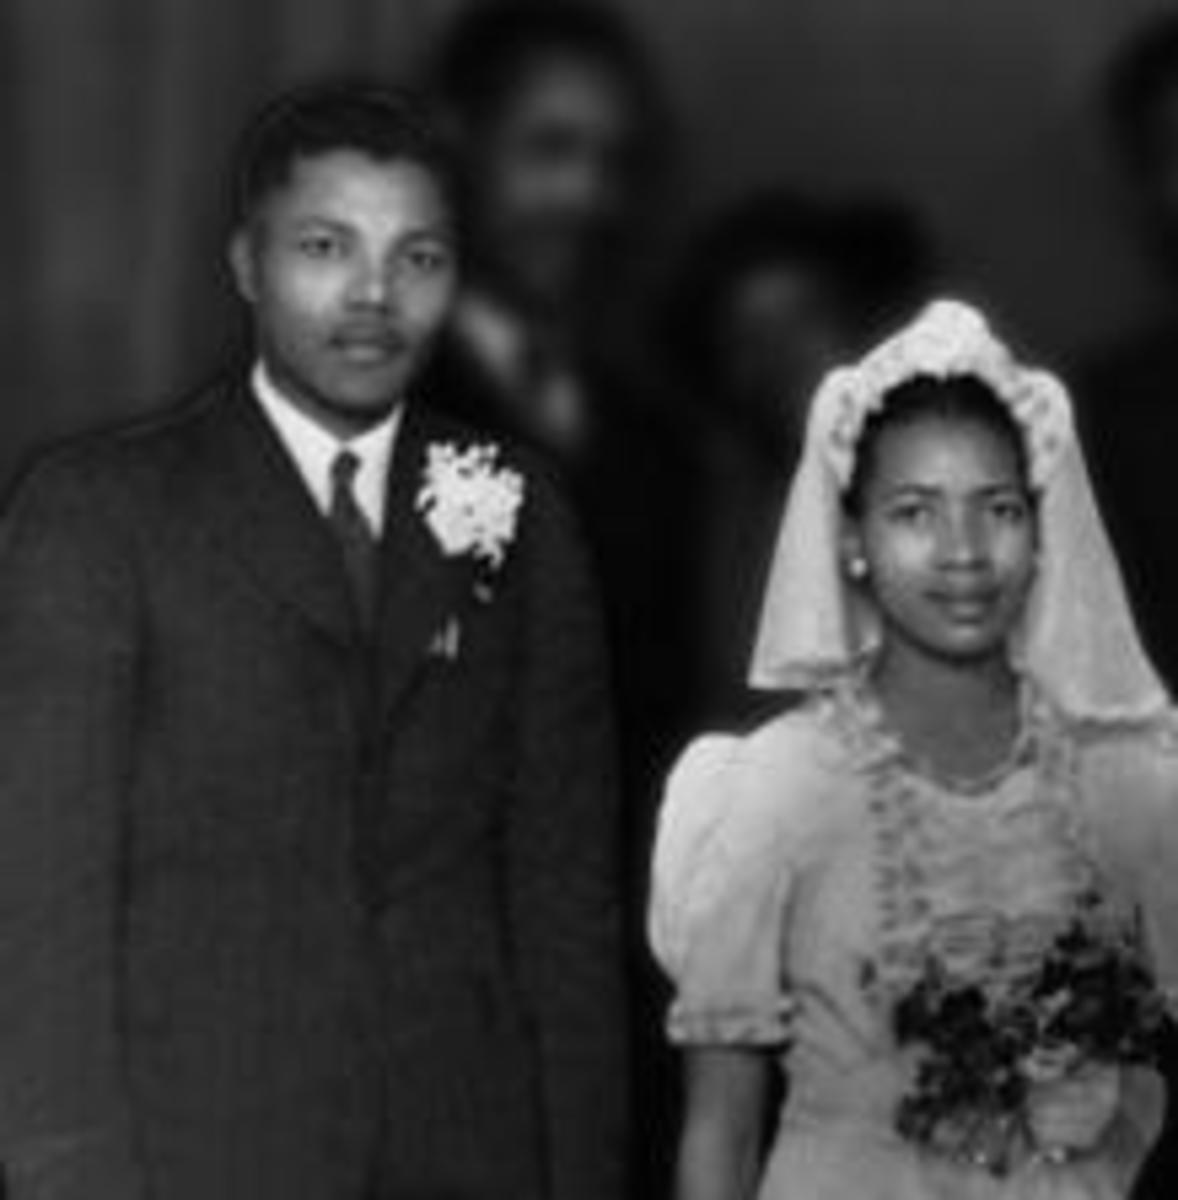 Nelson Mandela and Evelyn Mase (1944)